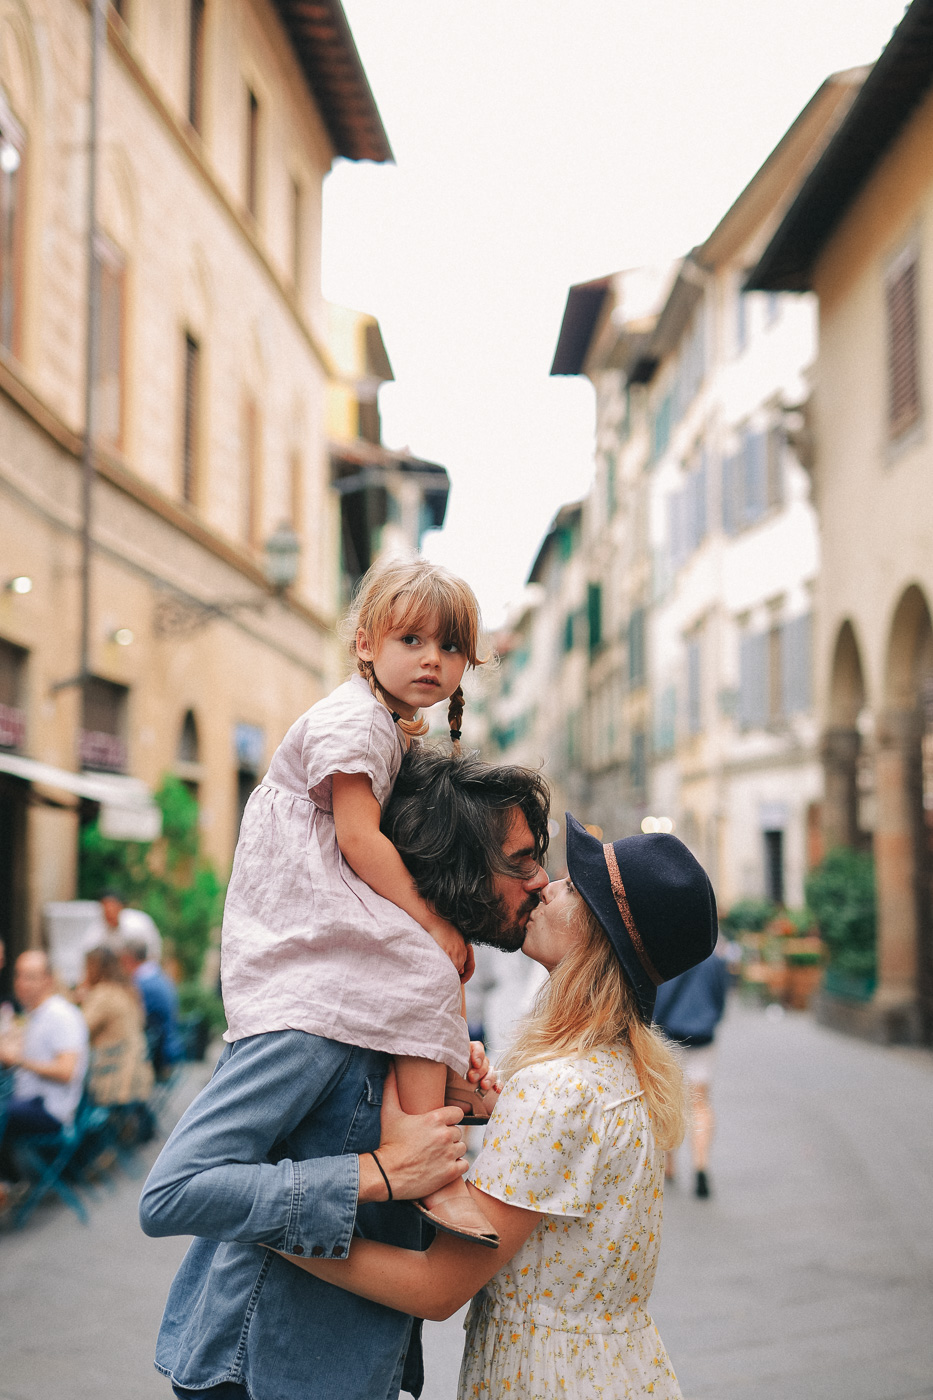 Family Photoshoot in Florence, Italy, Ponte Vecchio old bridge 41